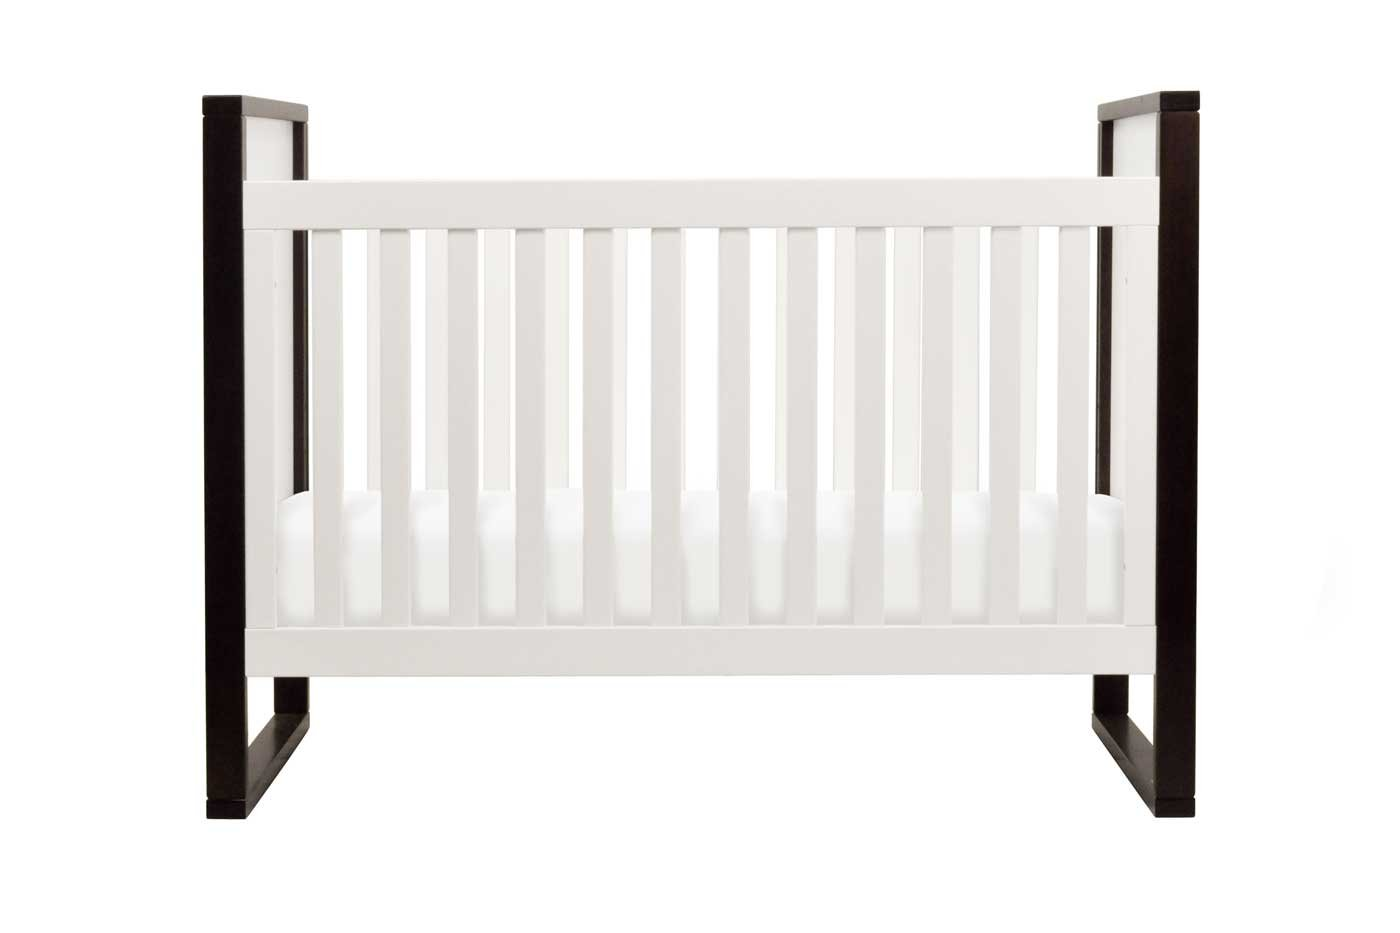 amazoncom  nurseryworks abbey crib  nursery works abbey  - amazoncom  nurseryworks abbey crib  nursery works abbey convertible crib baby